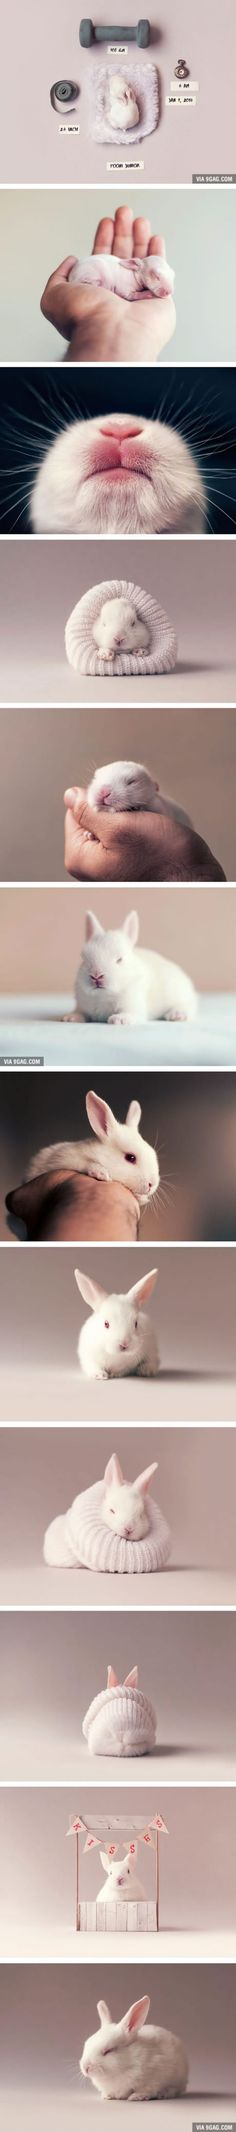 This baby photoshoot of a newborn bunny is awwdorable (By Ashraful Arefin)